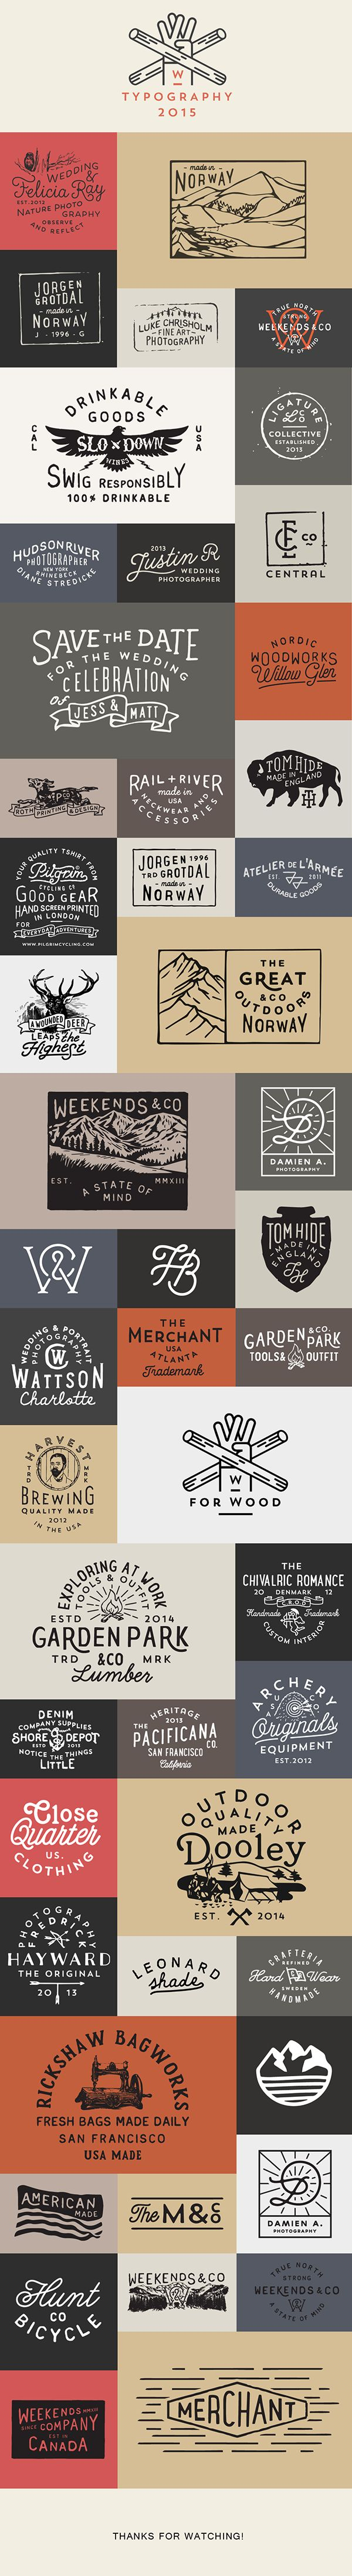 Logos & Typography 2015 on Behance